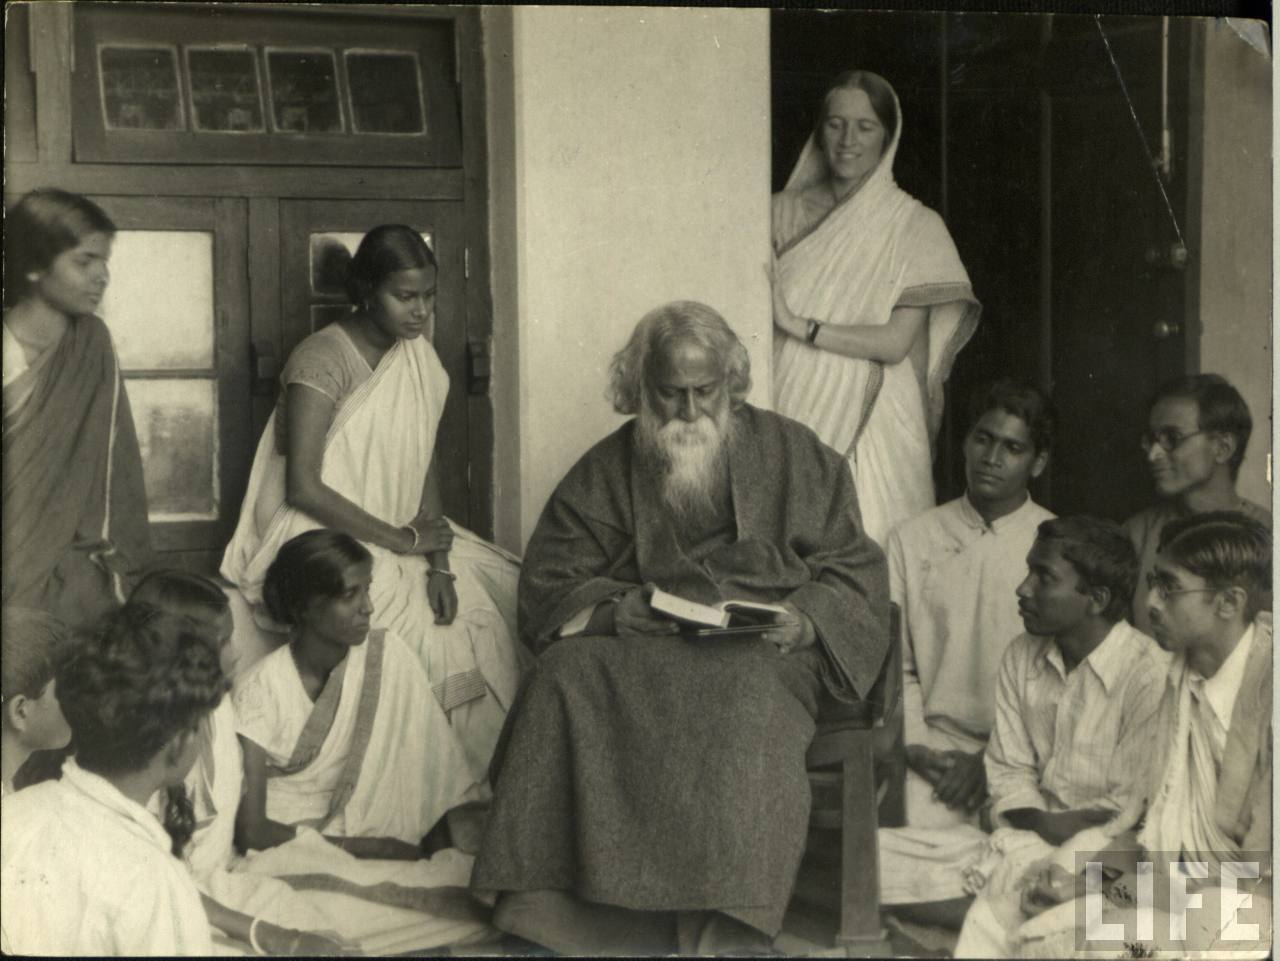 rabindranath tagore contribution to the society Rabindranath tagore rabindranath tagore was born on may 9, 1861 in an affluent family in the jorasanko mansion in kolkata his parents were debendranath tagore and sarada devirabindranath tagore was born in calcutta, india into a wealthy brahmin family.